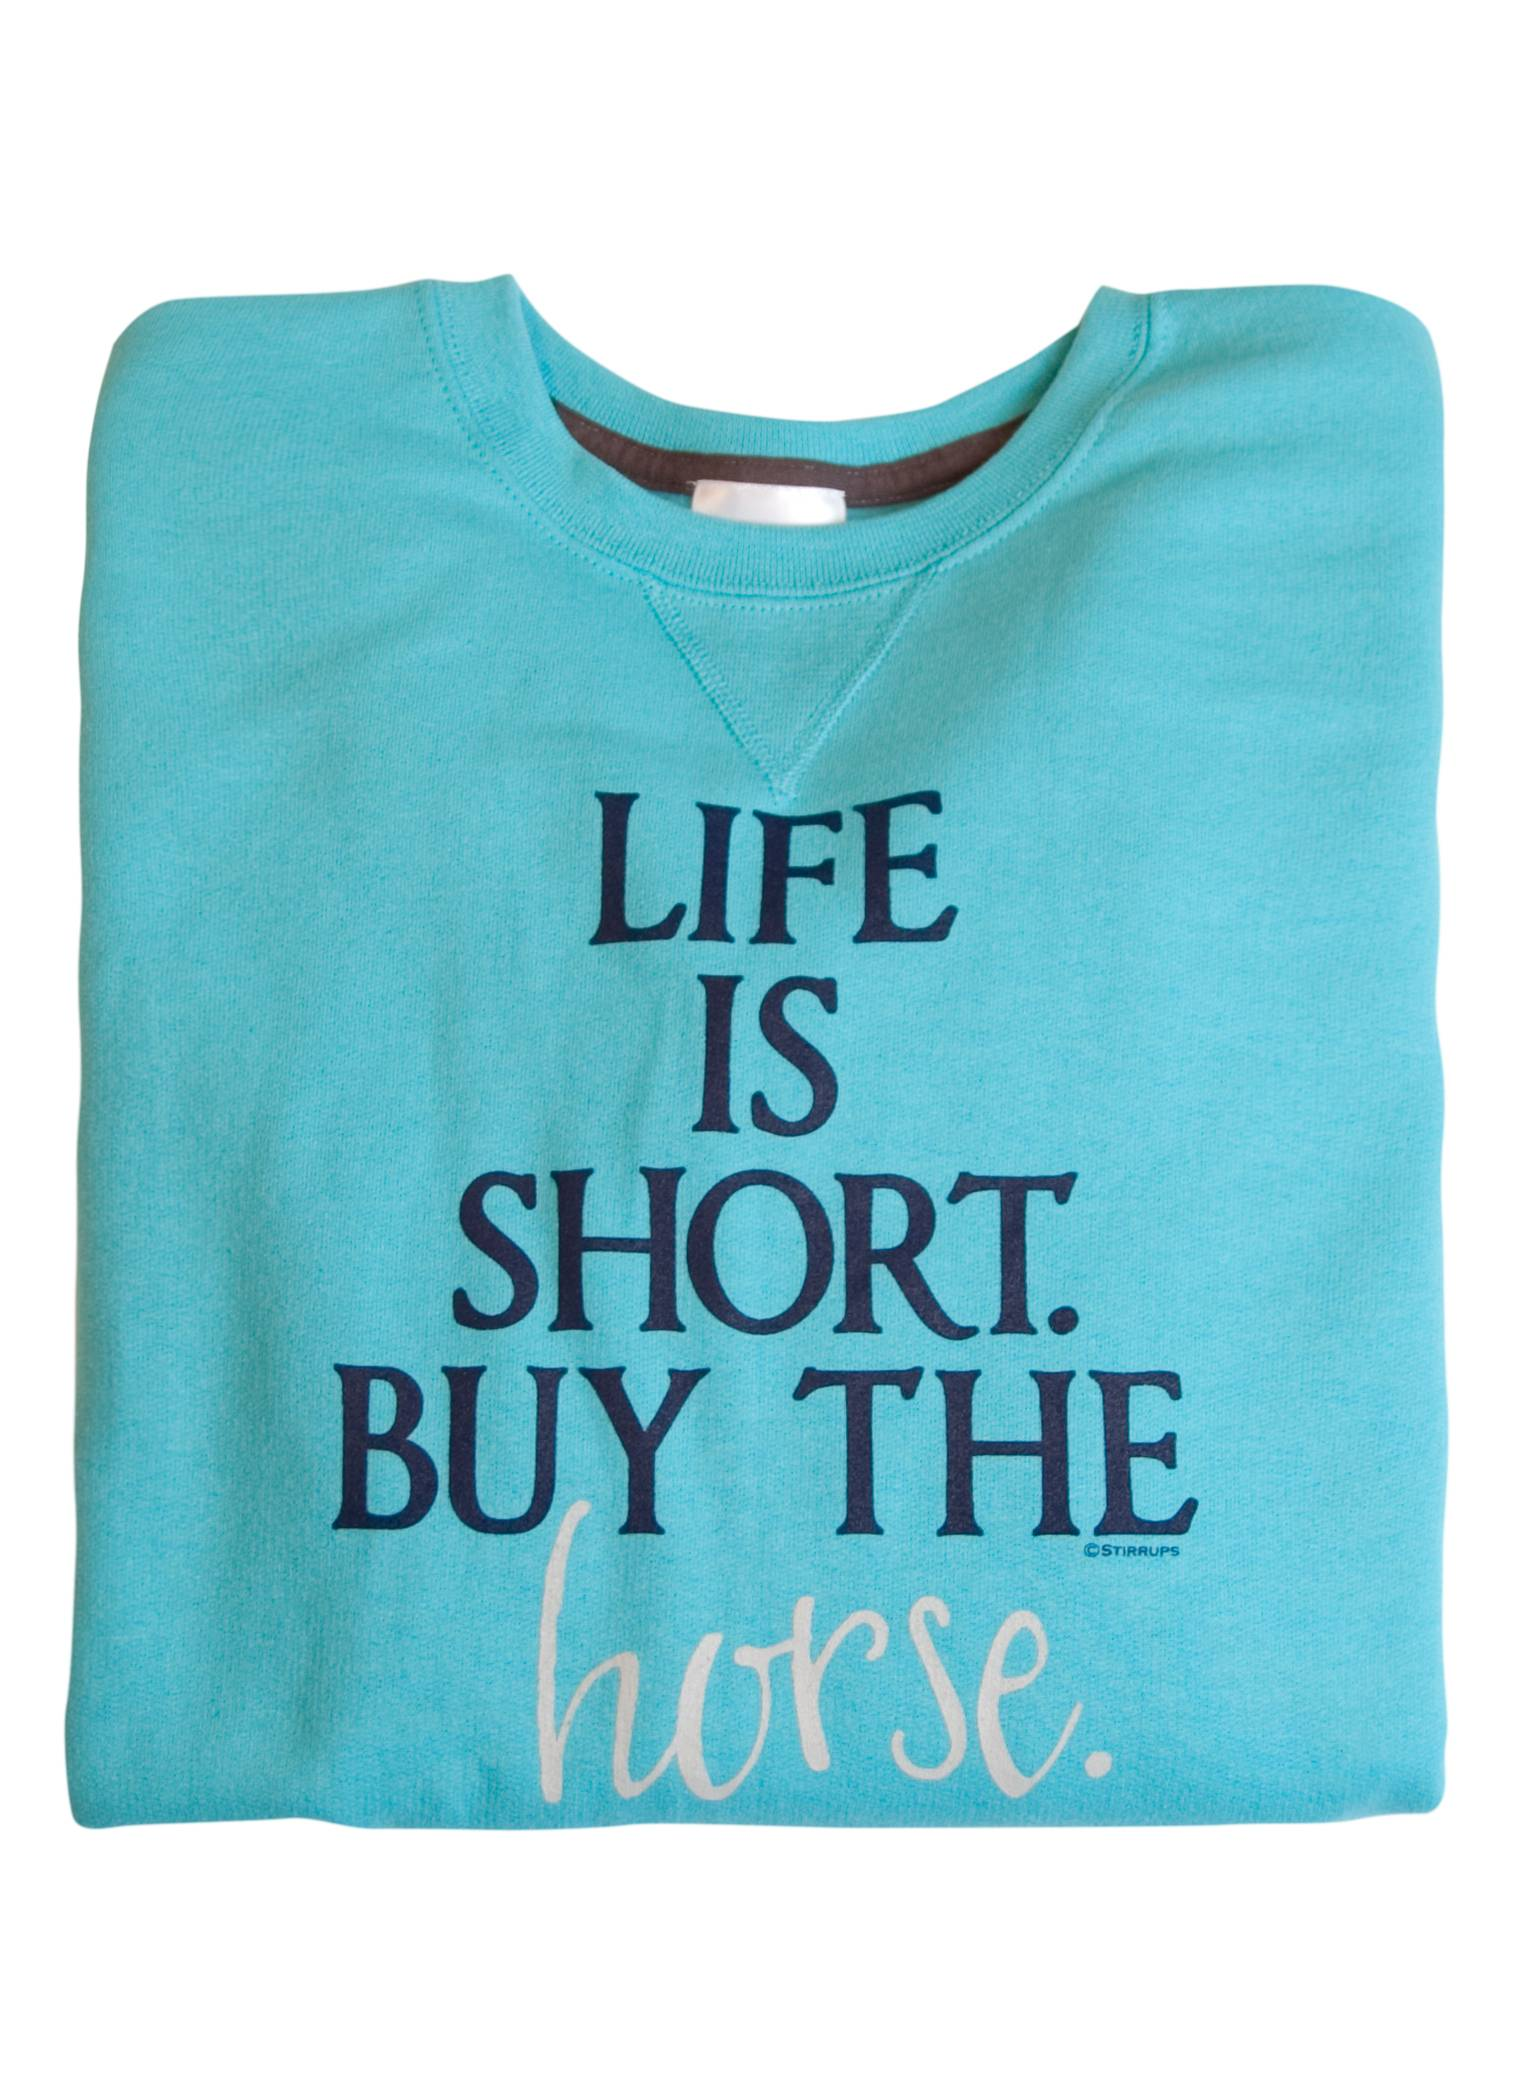 Stirrups Life Is Short Buy The Horse Crewneck Sweatshirt - Ladies